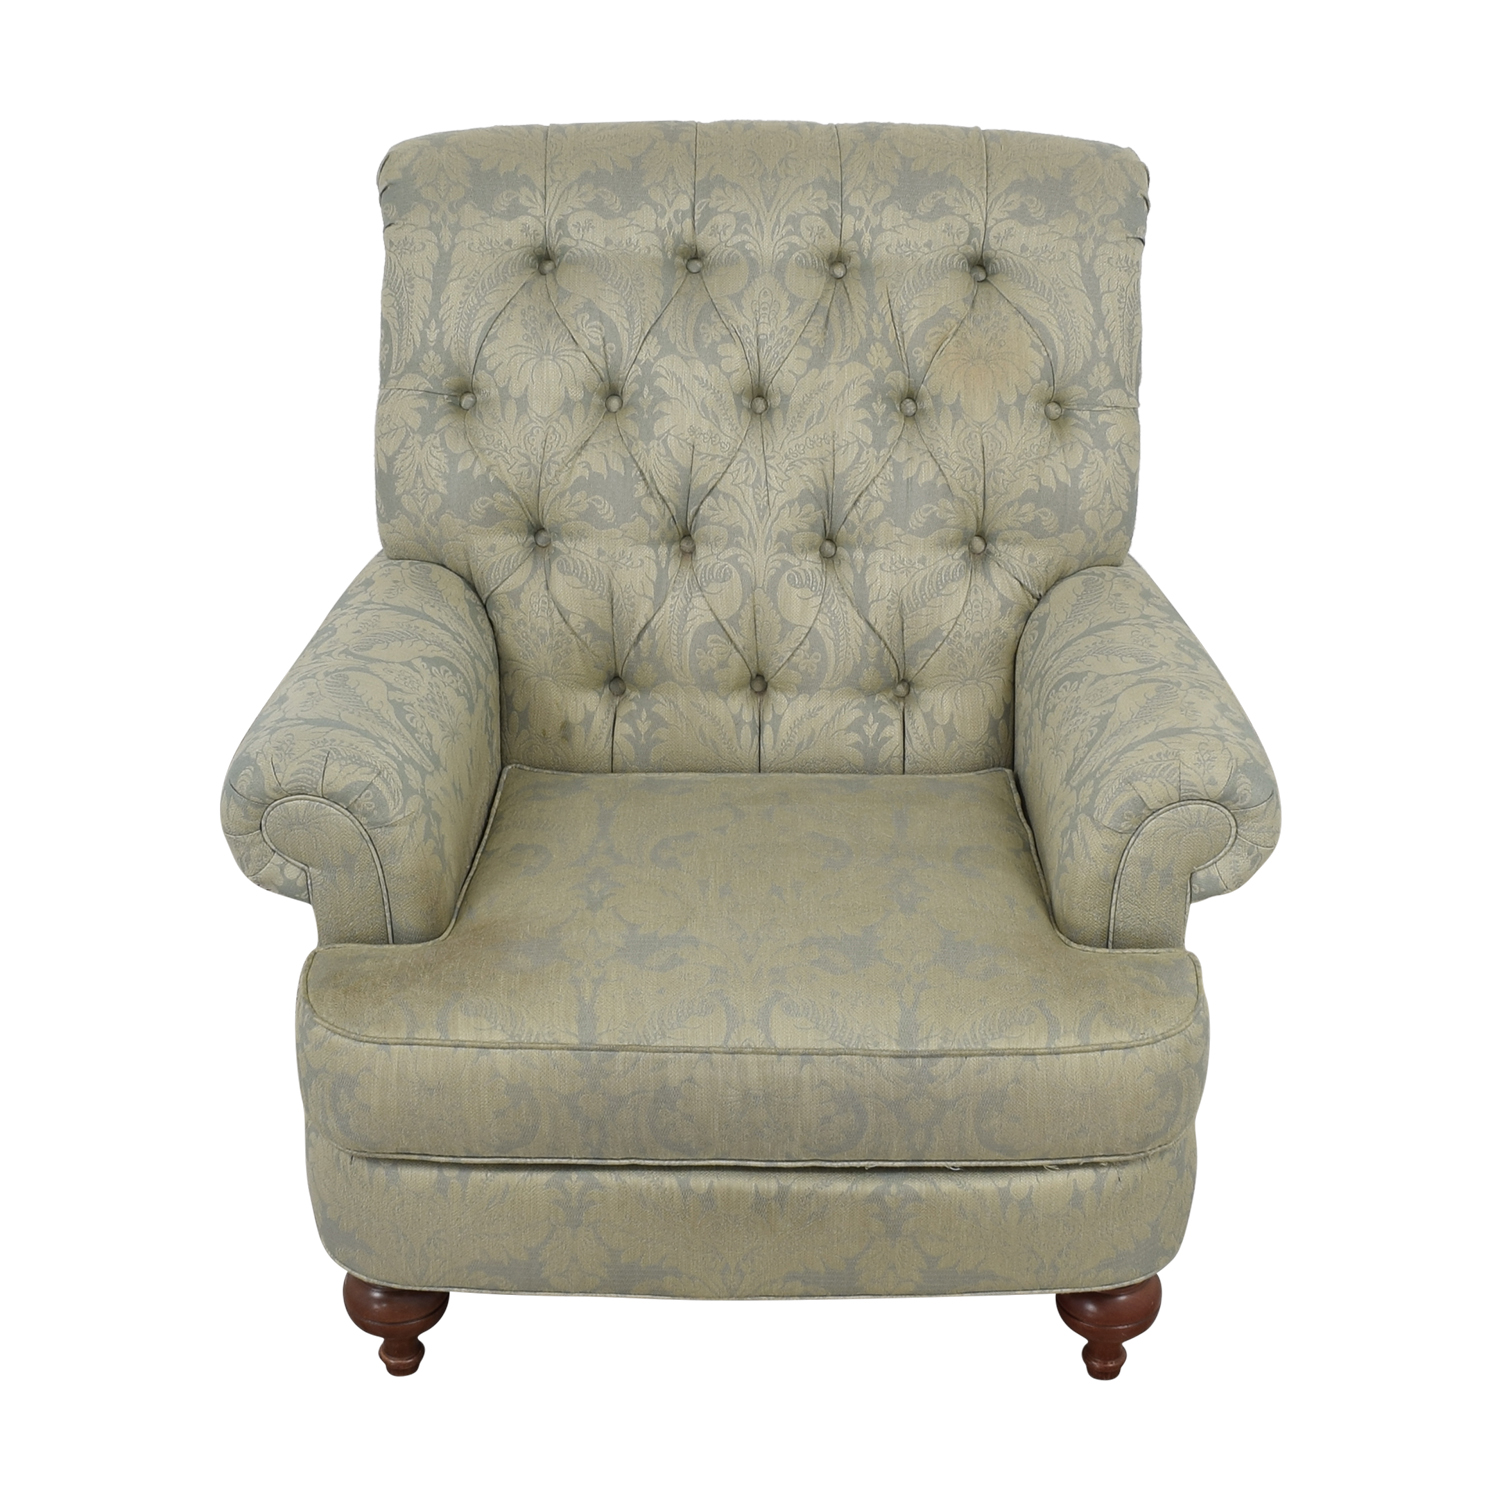 Ethan Allen Ethan Allen Tufted Arm Chair Accent Chairs